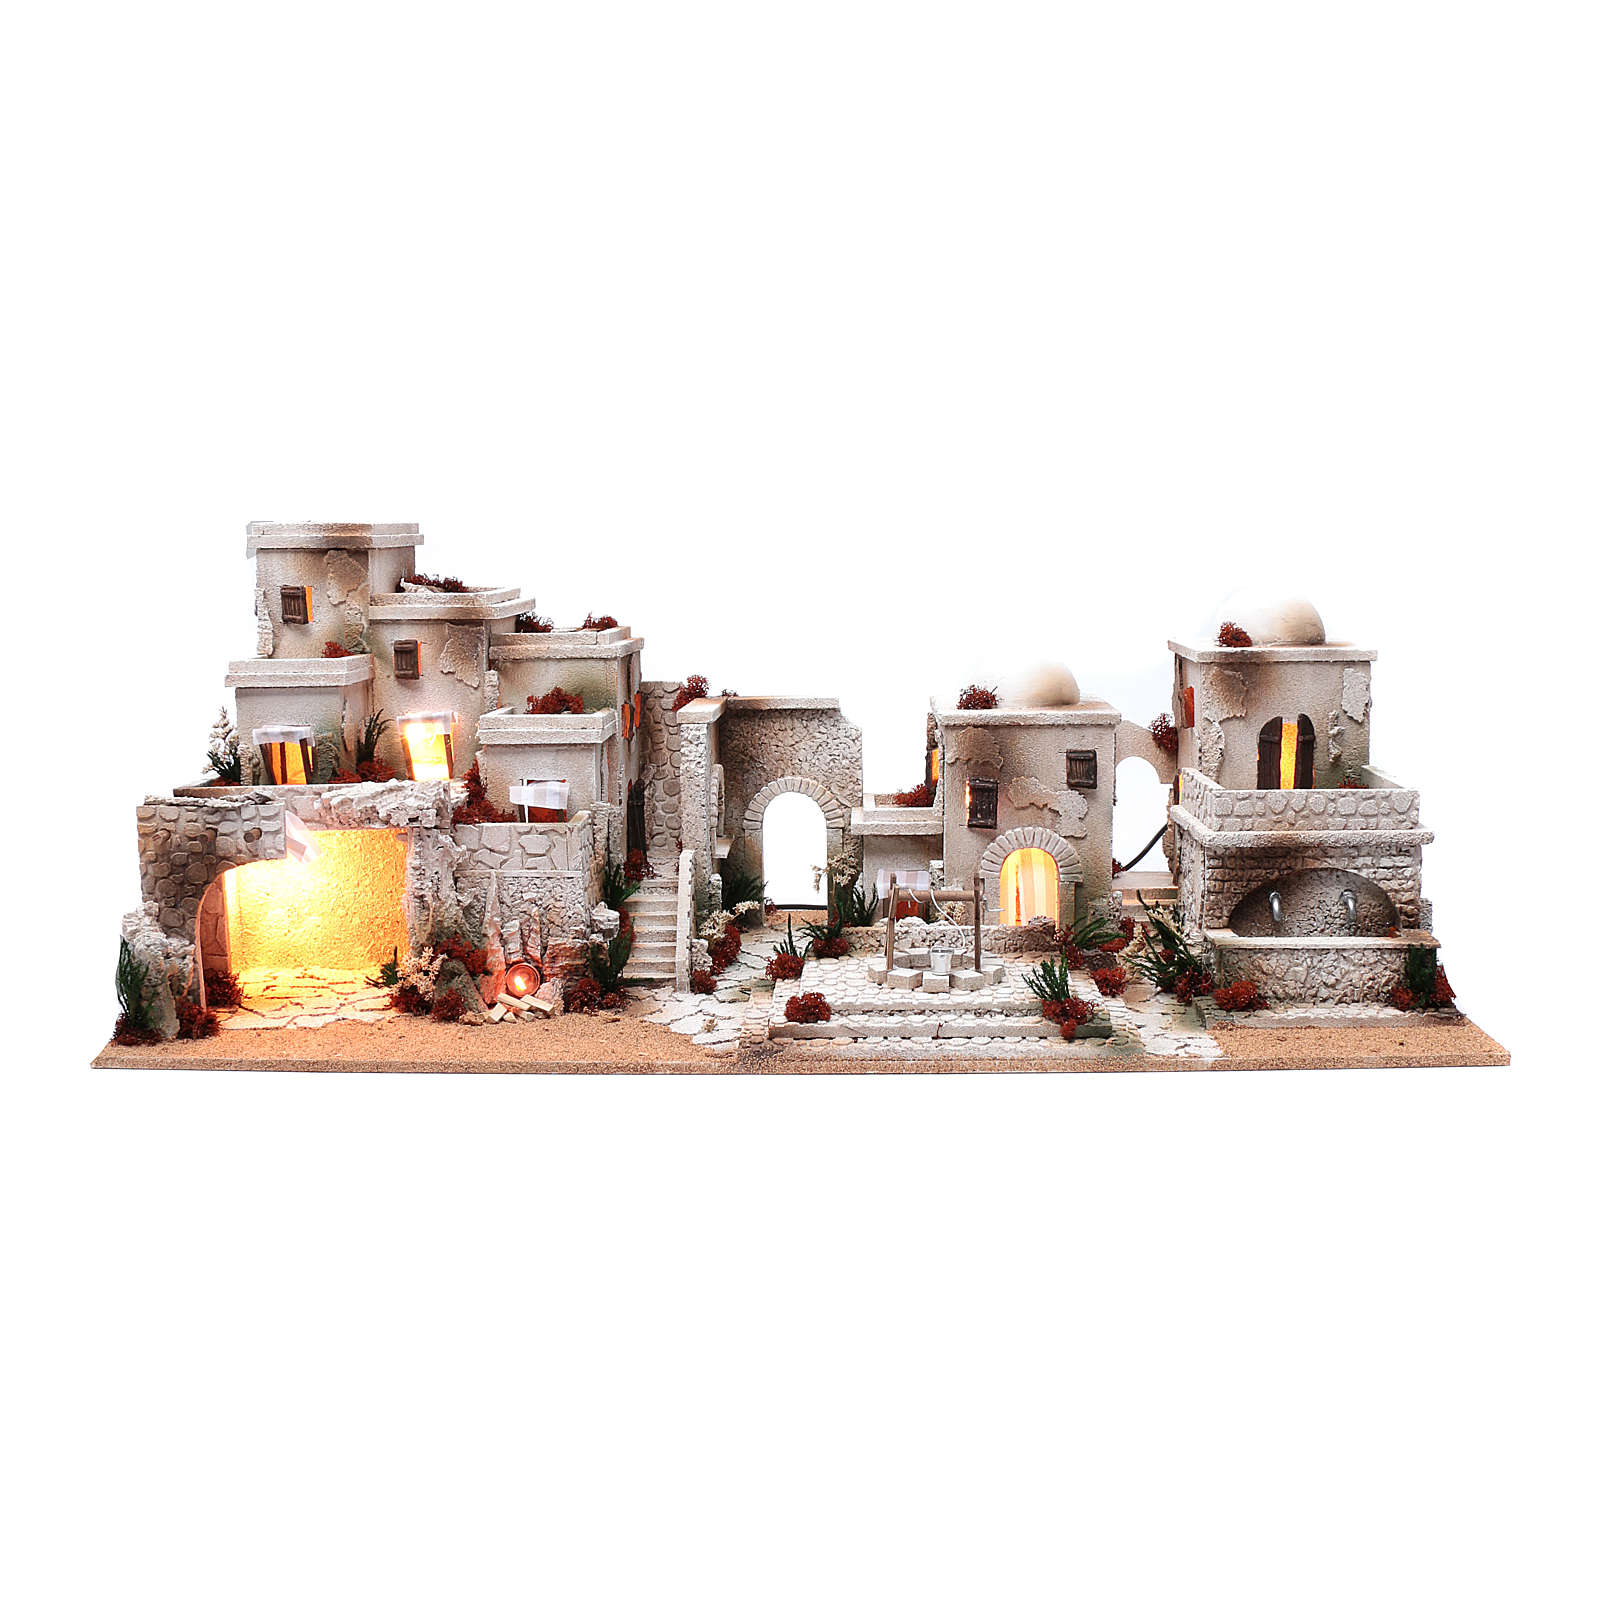 Arabian nativity scene setting  35x95x45 cm with lights and fountain 4